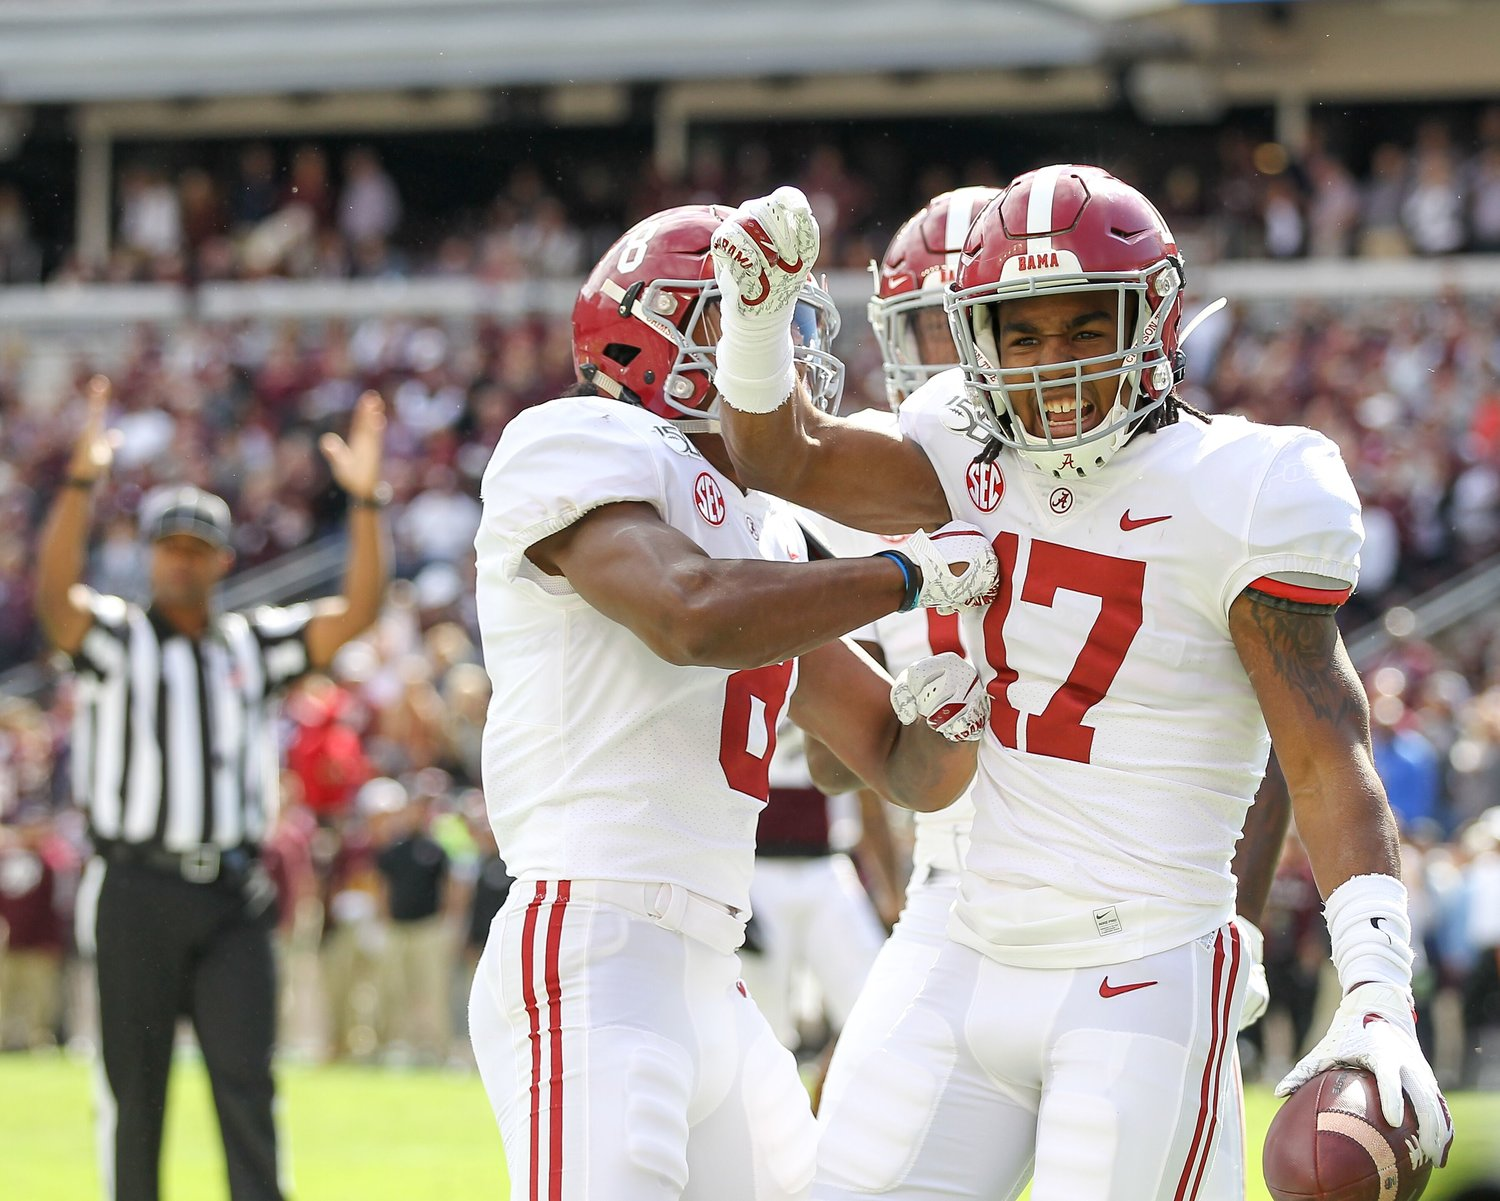 Alabama's Jaylen Waddle celebrates in the end zone following a first quarter touchdown Saturday.